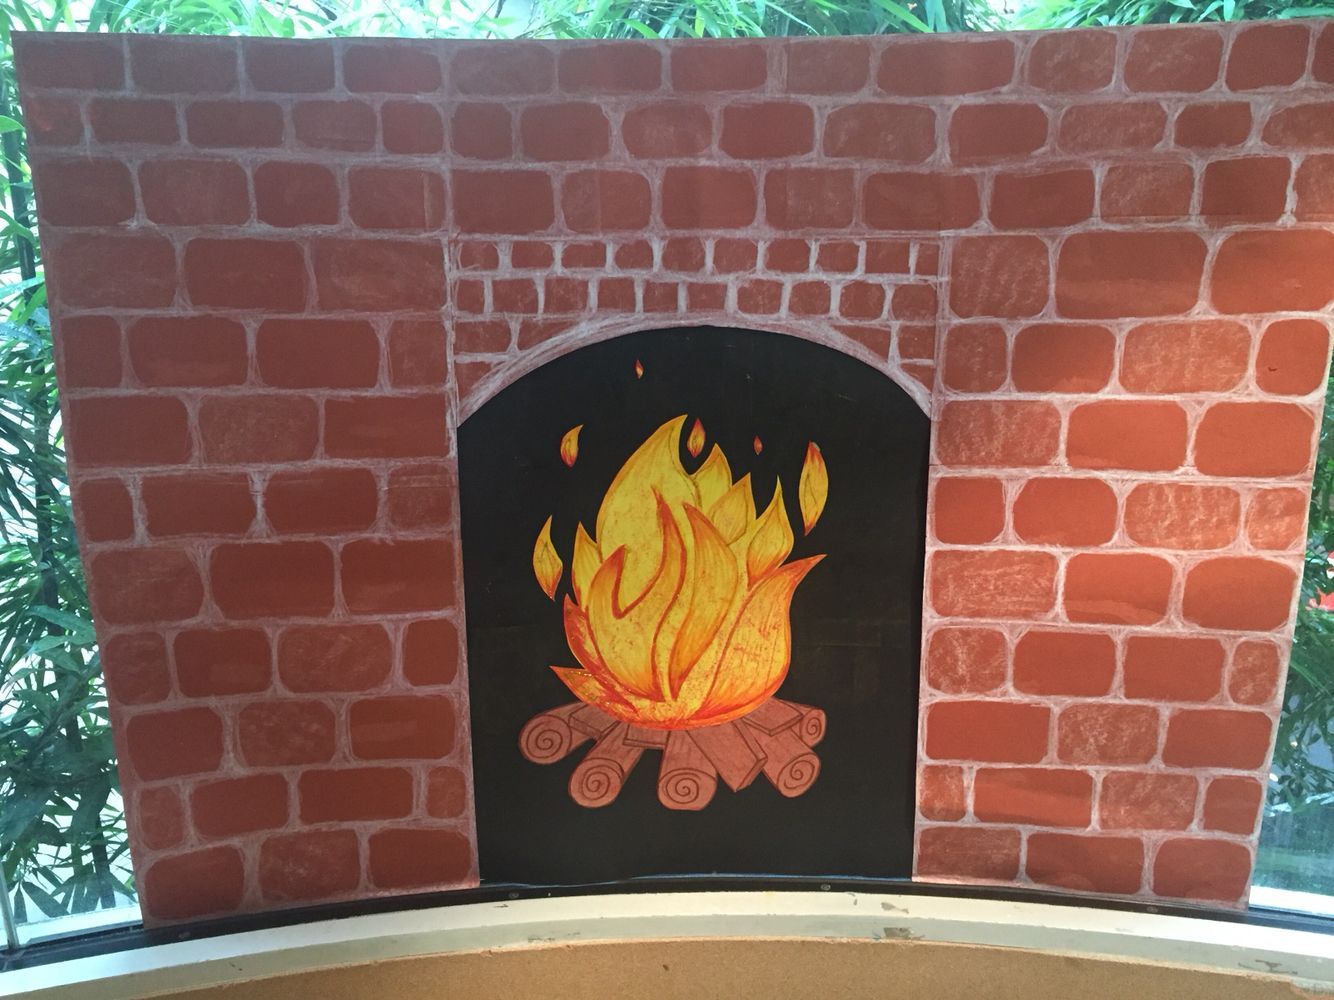 Construction paper fireplace I made for our kindergarten ...